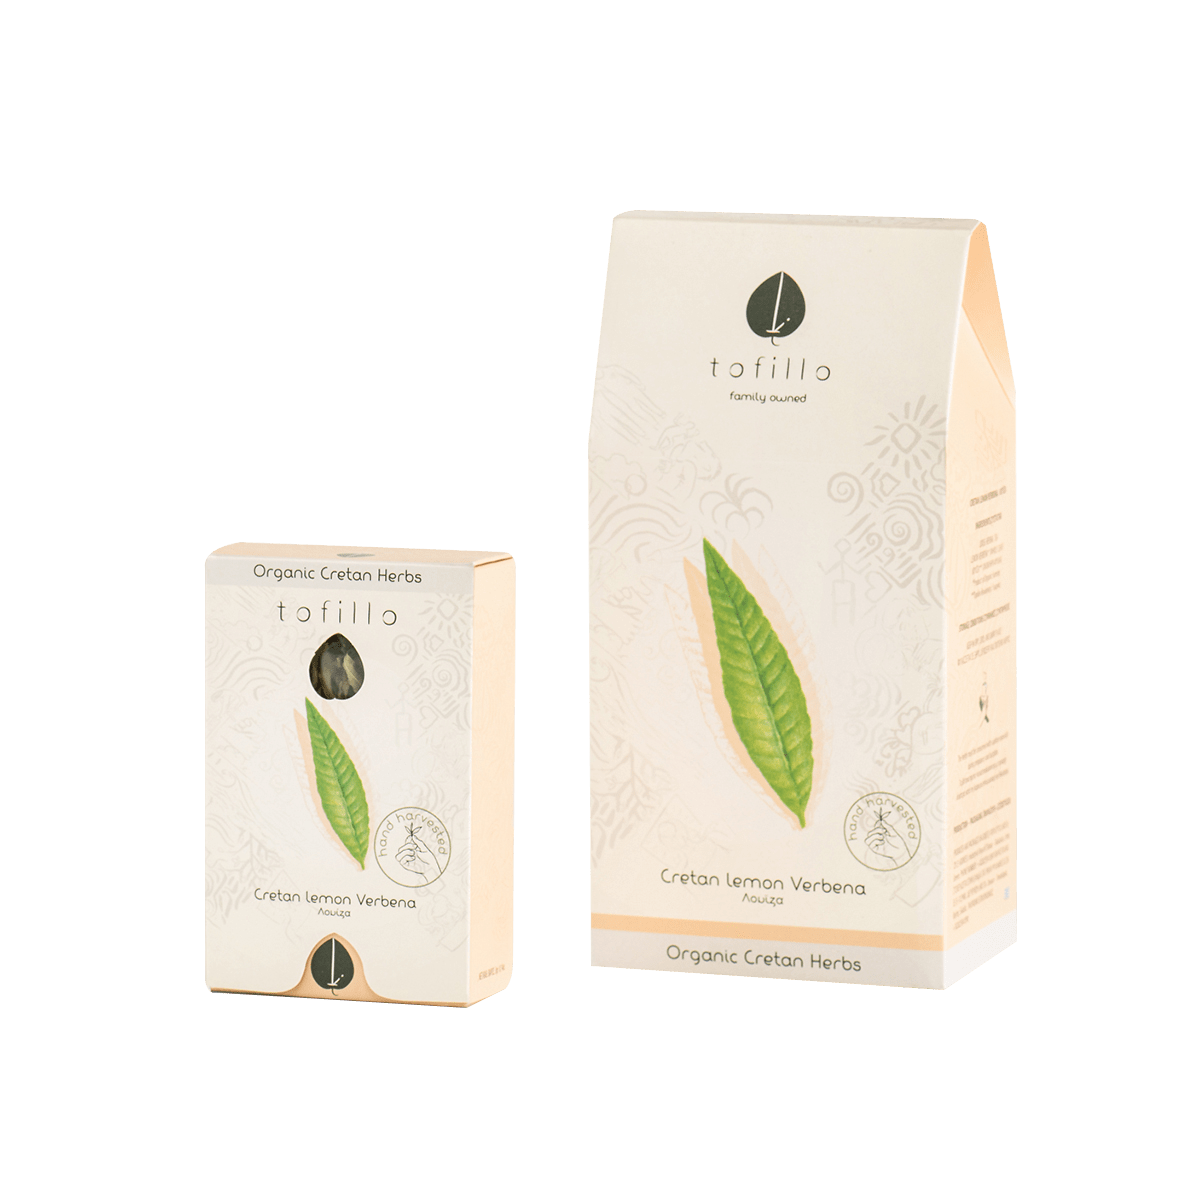 Lemon Verbenaorganic Tea Loose Leaf Tea Tofillo